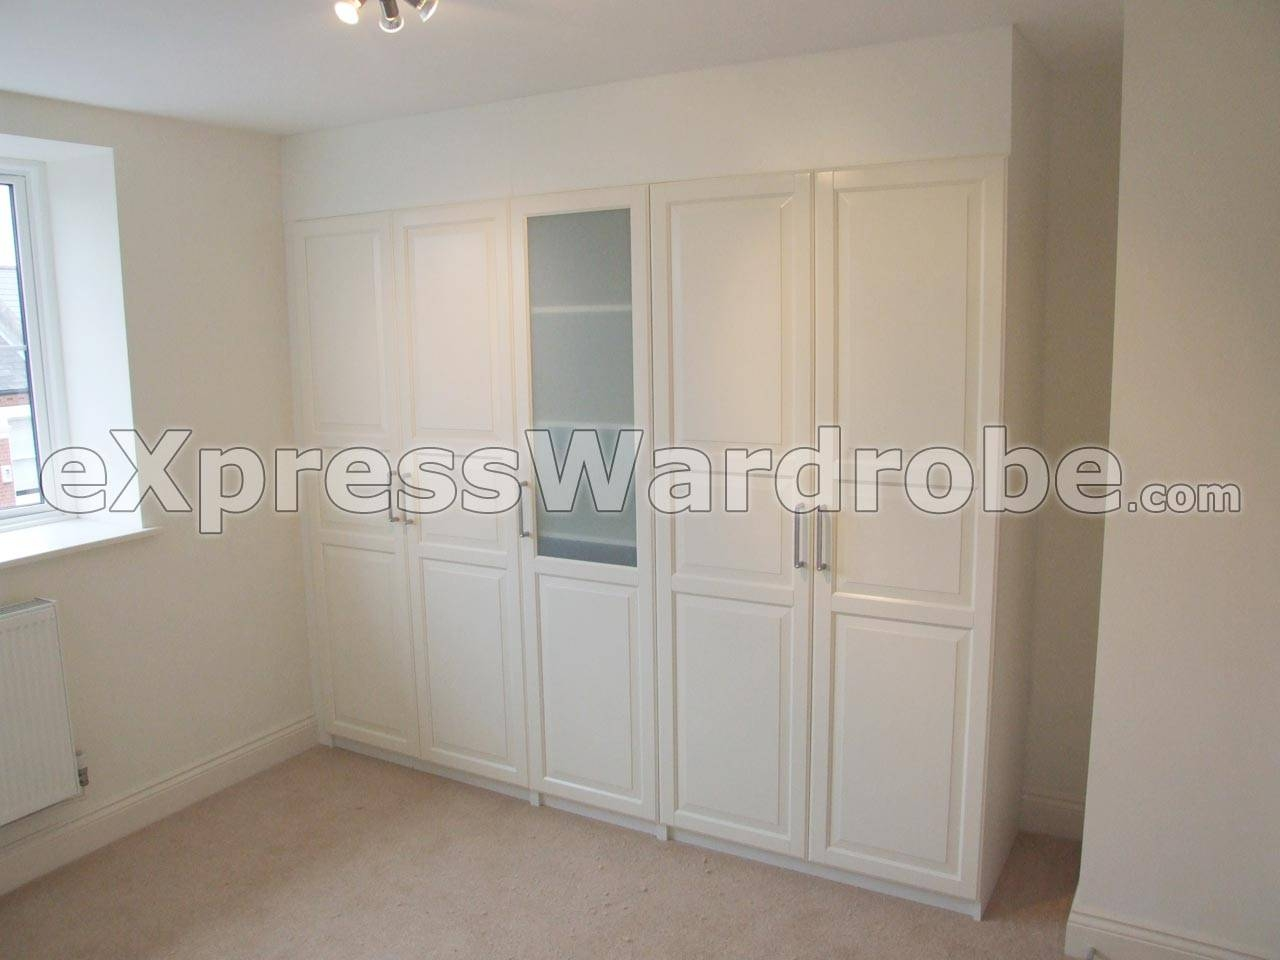 Cheap Fitted Wardrobes | Fitted Bedrooms | Fitted Bedroom intended for Wardrobes Cheap (Image 5 of 15)